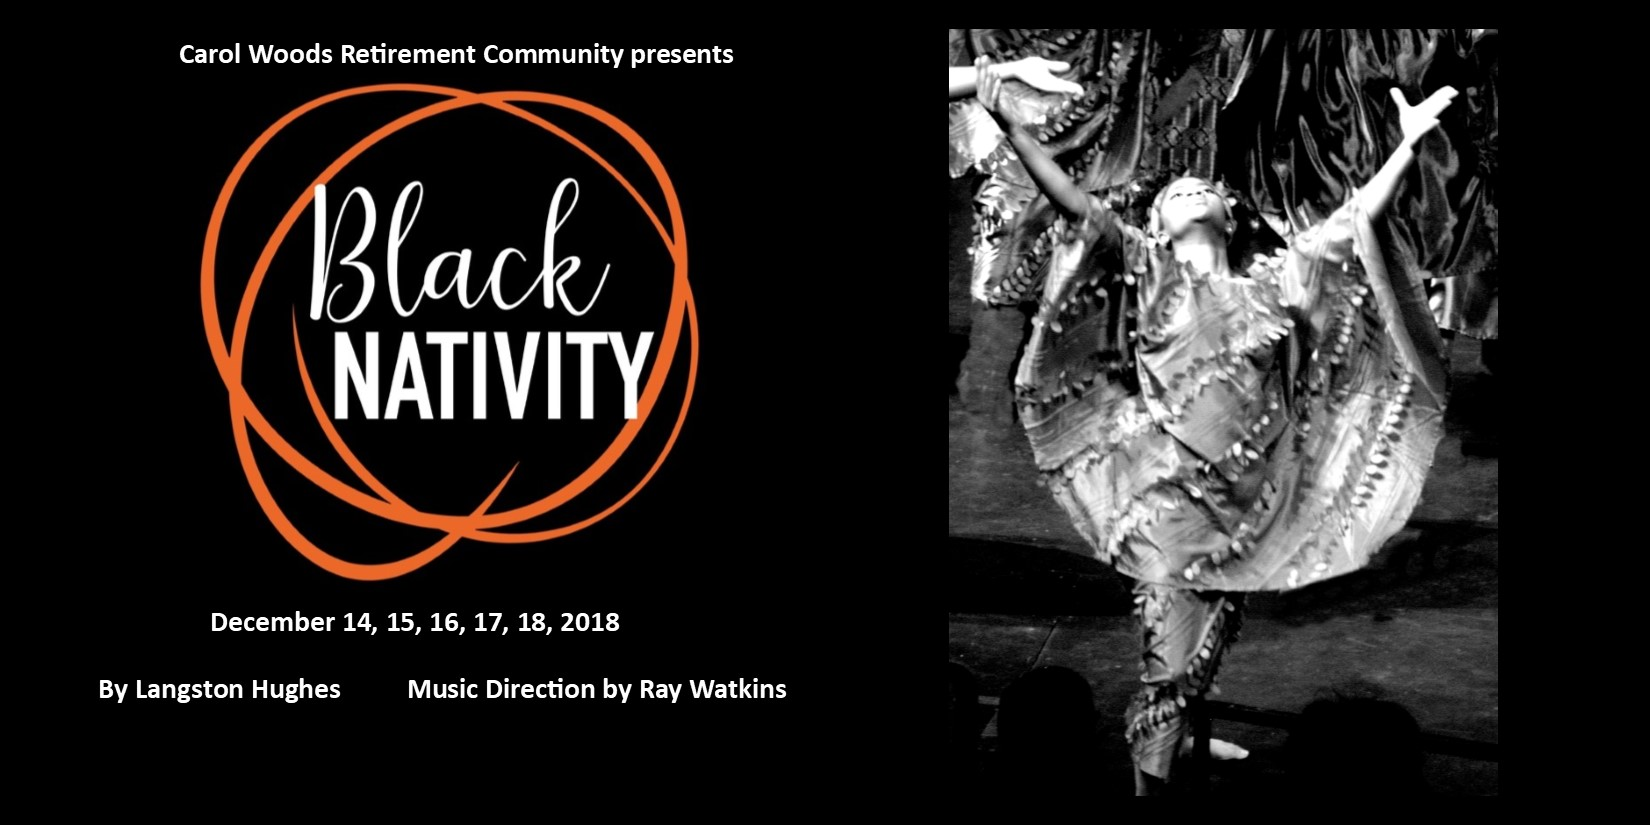 black nativity 2018 logo and photo.jpg